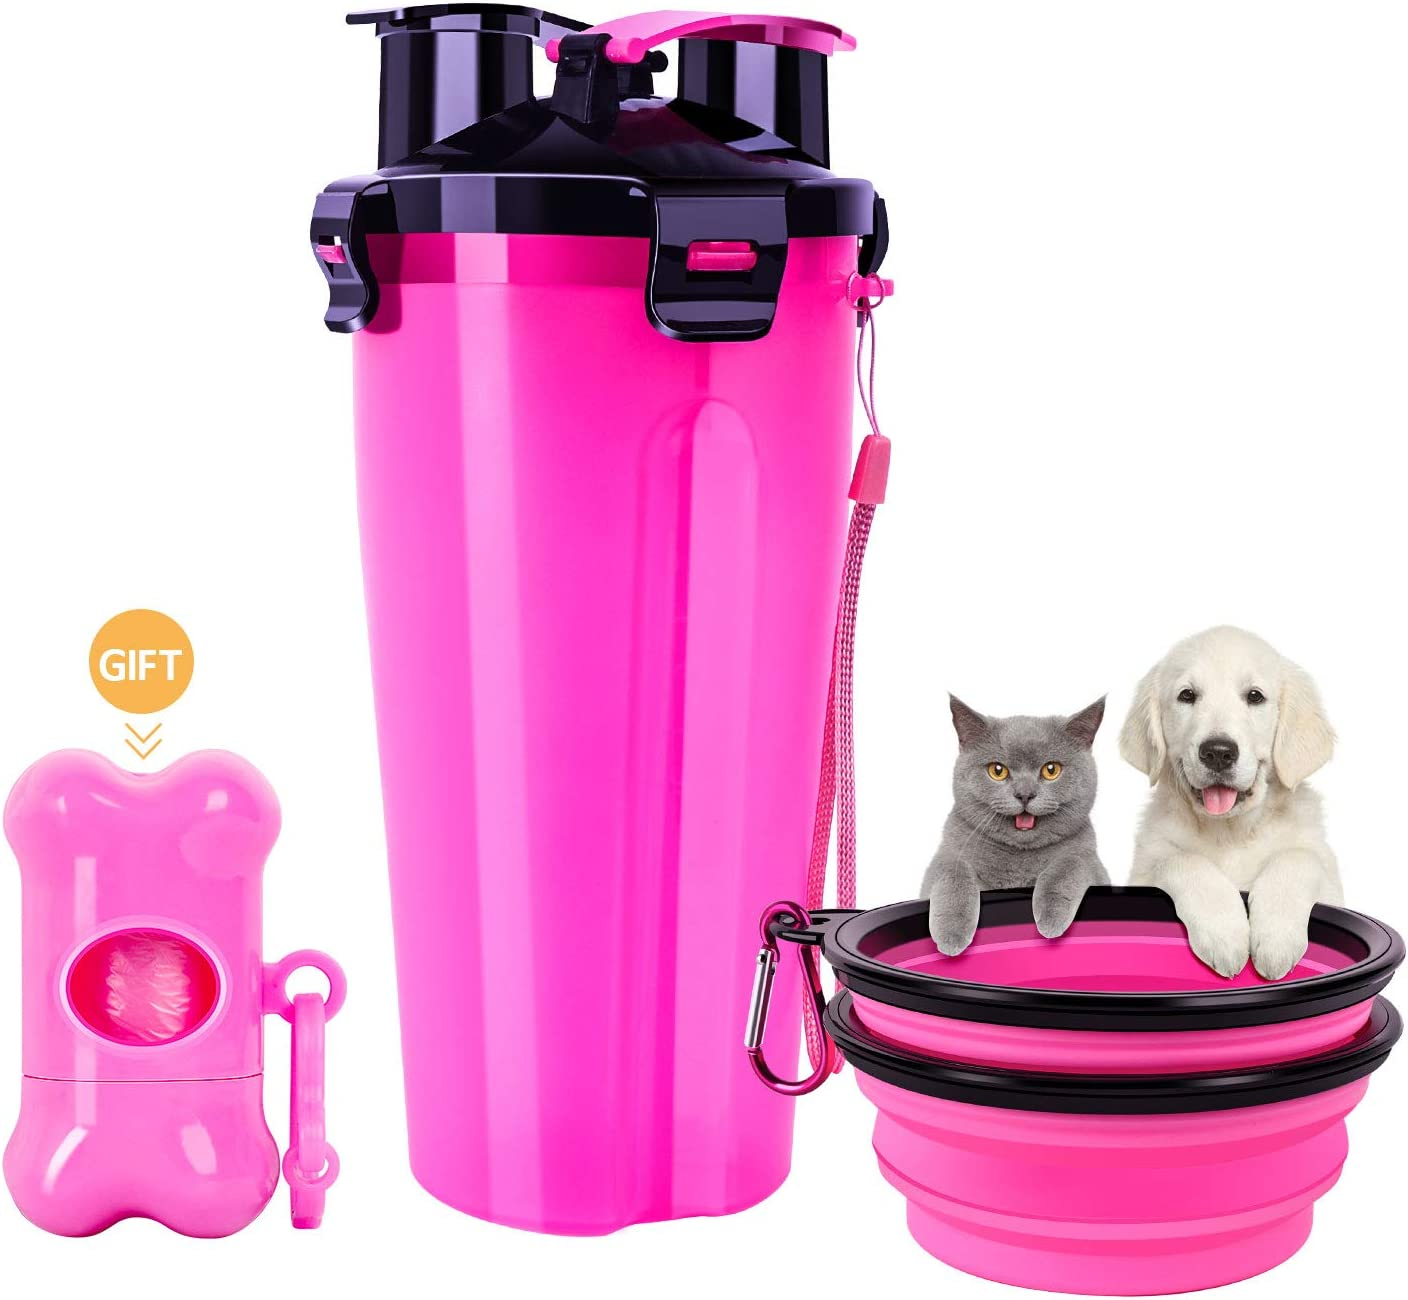 Dog Water Bottle for Walking, Portable Water Bottle with Collapsible Dog Bowl and Dog Poop Bag, 2 in 1 Outdoor Pet Water Food Container for Large Small Dog, Leak-Proof Cat Water Bottle for Traveling